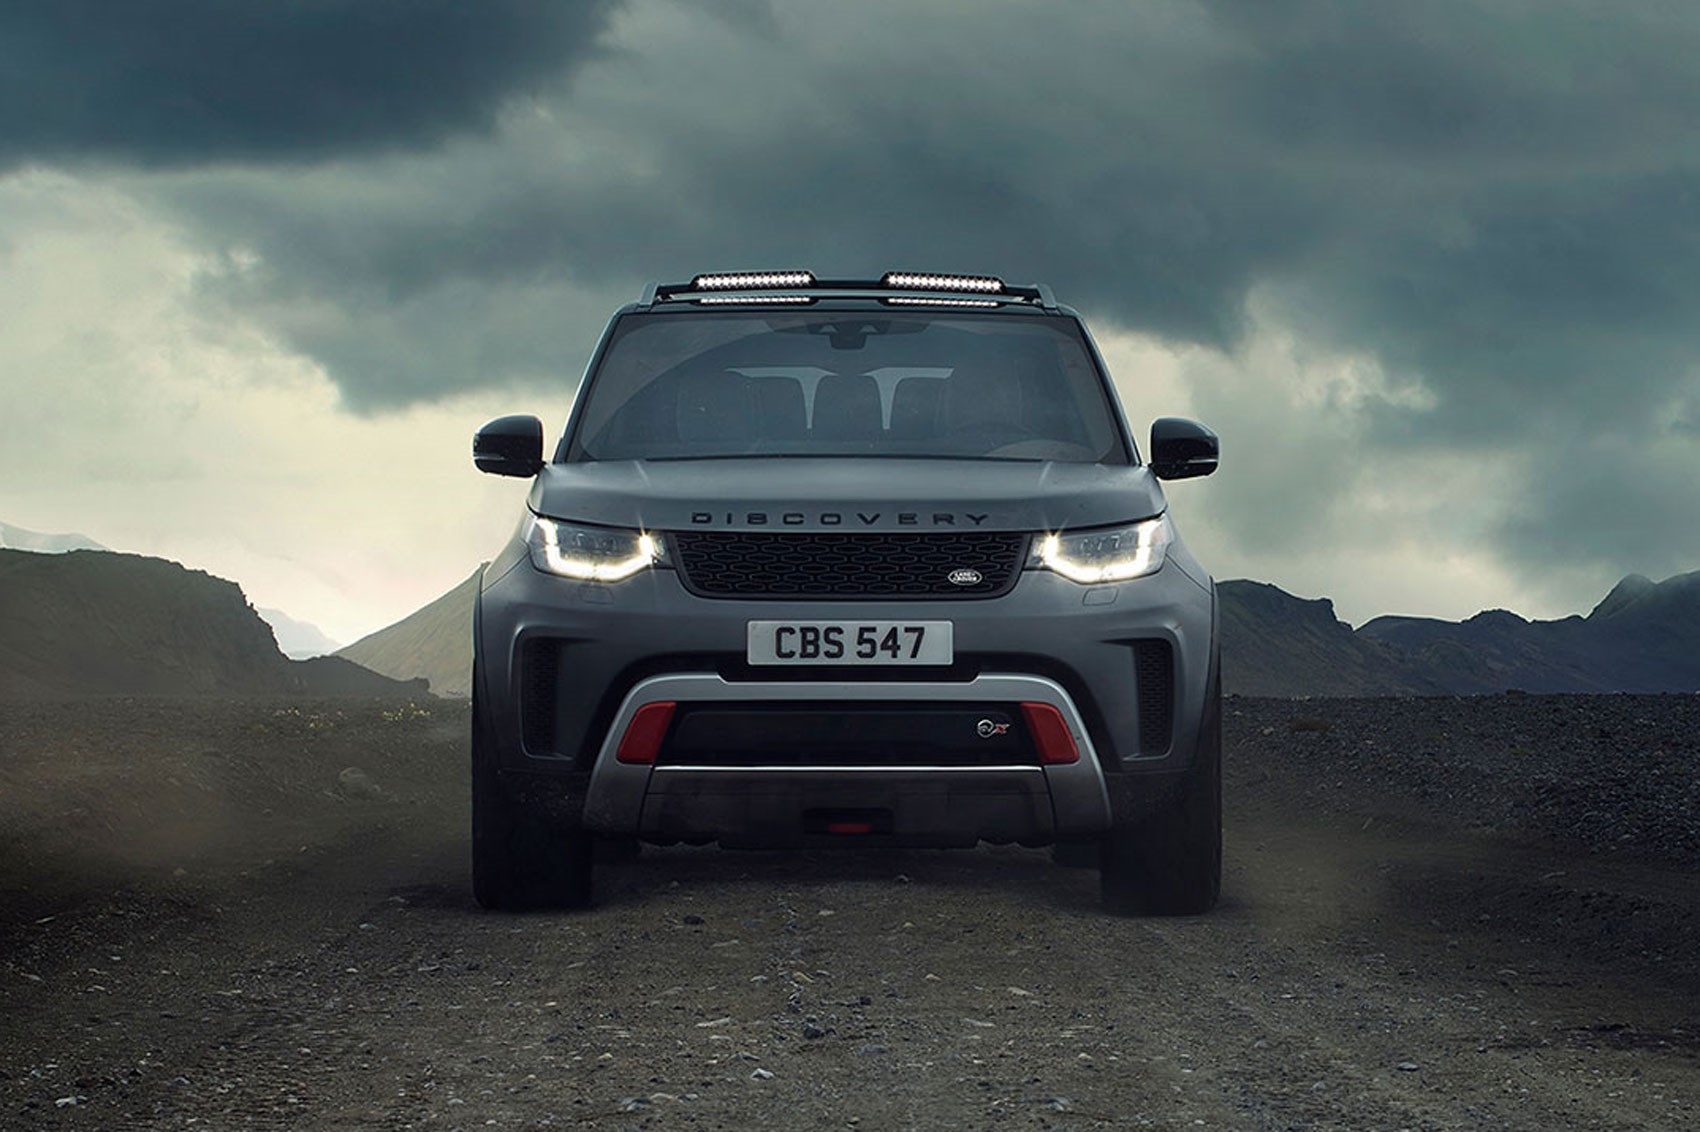 land rover discovery svx revealed in pictures car magazine. Black Bedroom Furniture Sets. Home Design Ideas